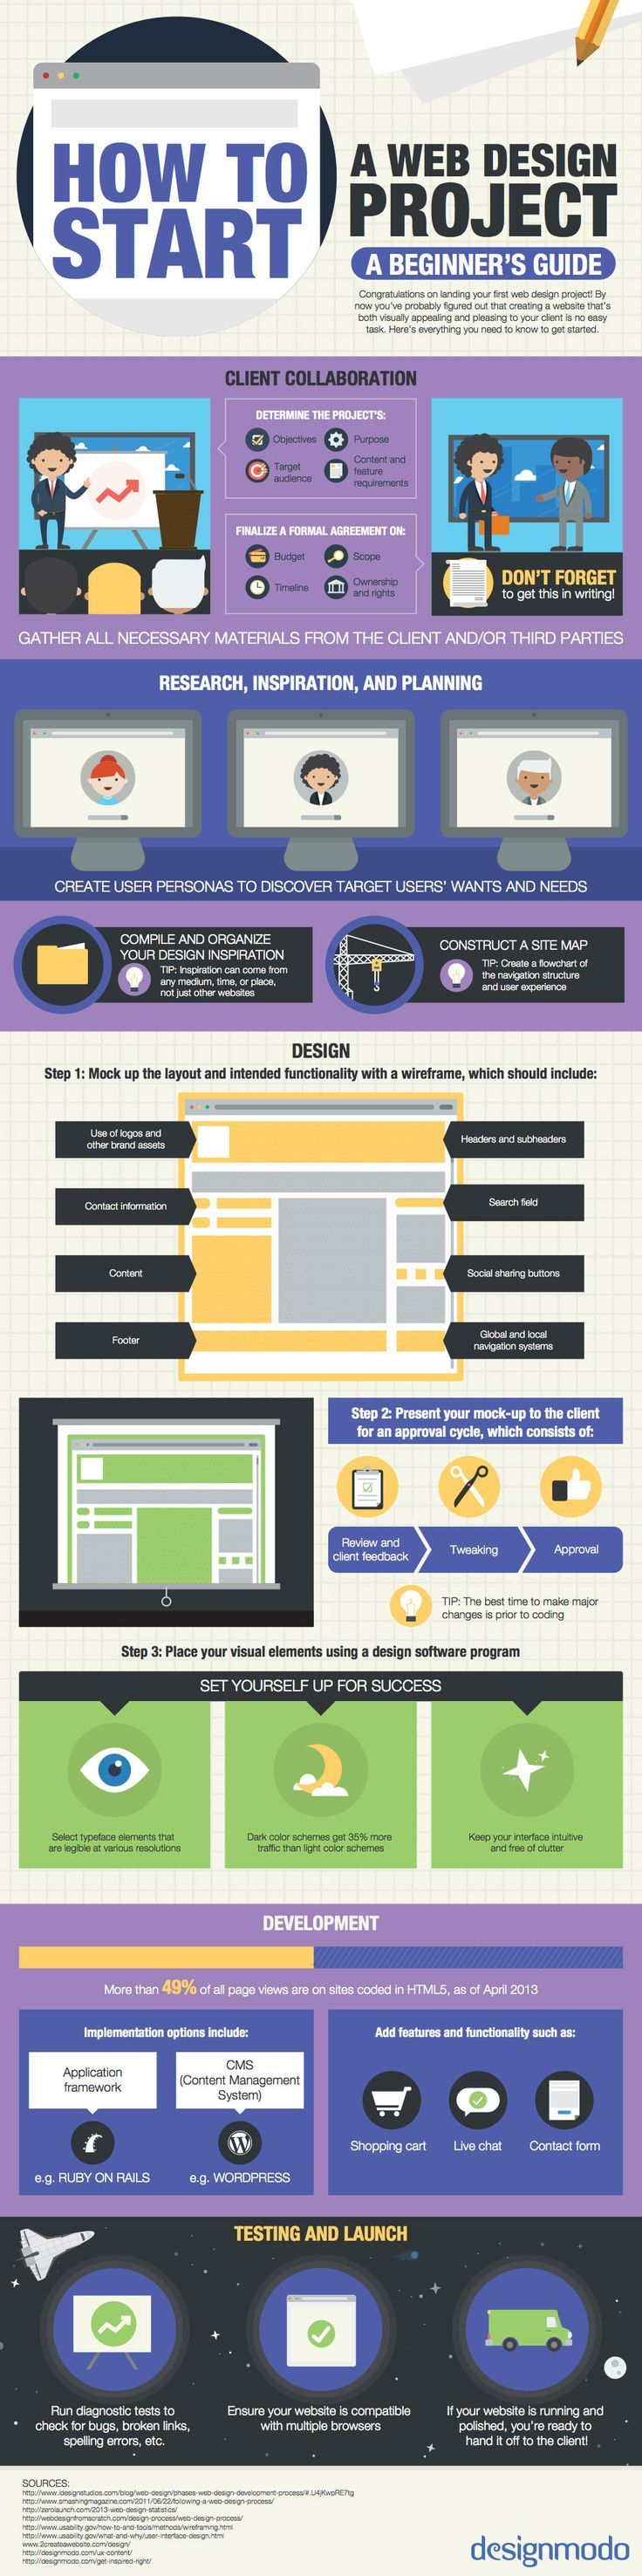 how to start a web design project httpwebmagco - Web Design Project Ideas